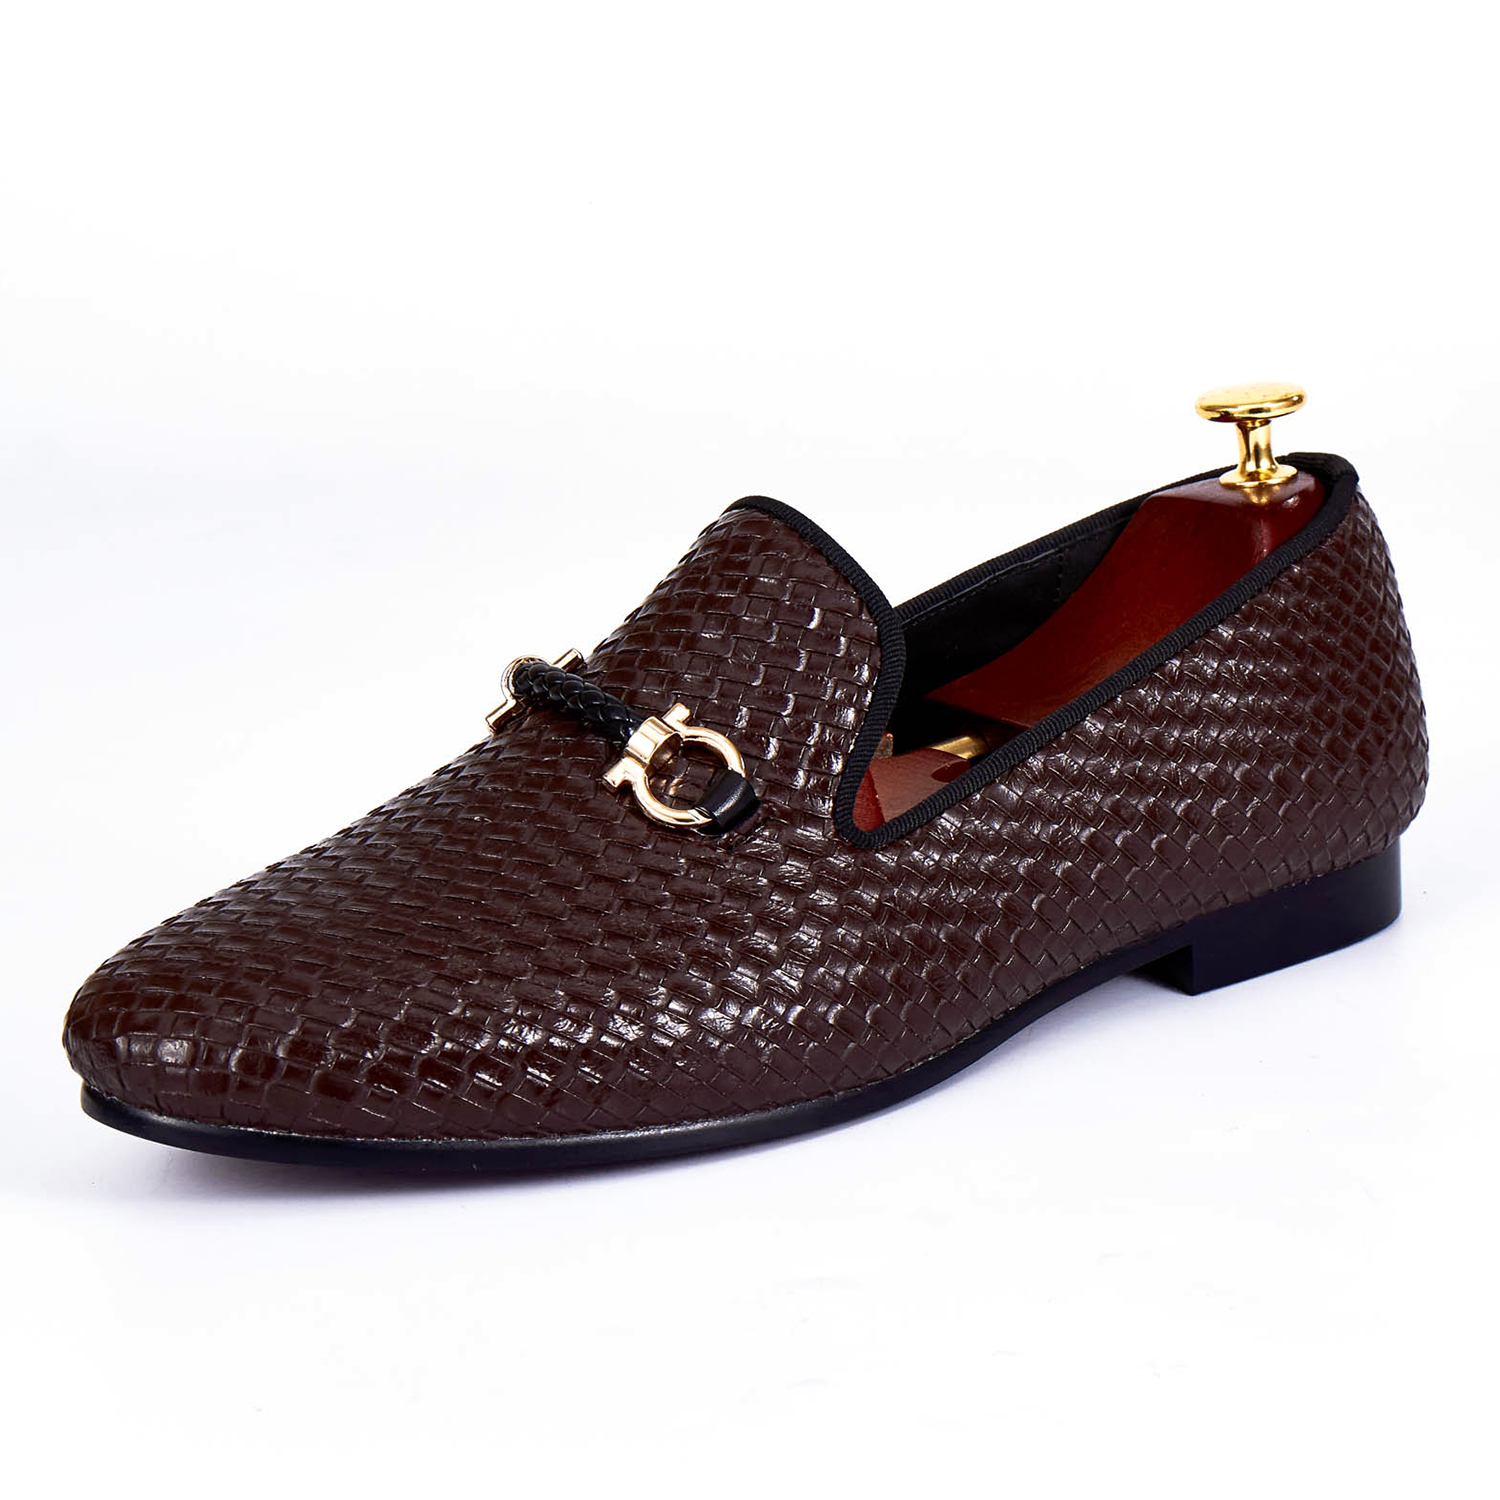 brown wedding shoes harpelunde woven leather men wedding shoes brown flats 2092